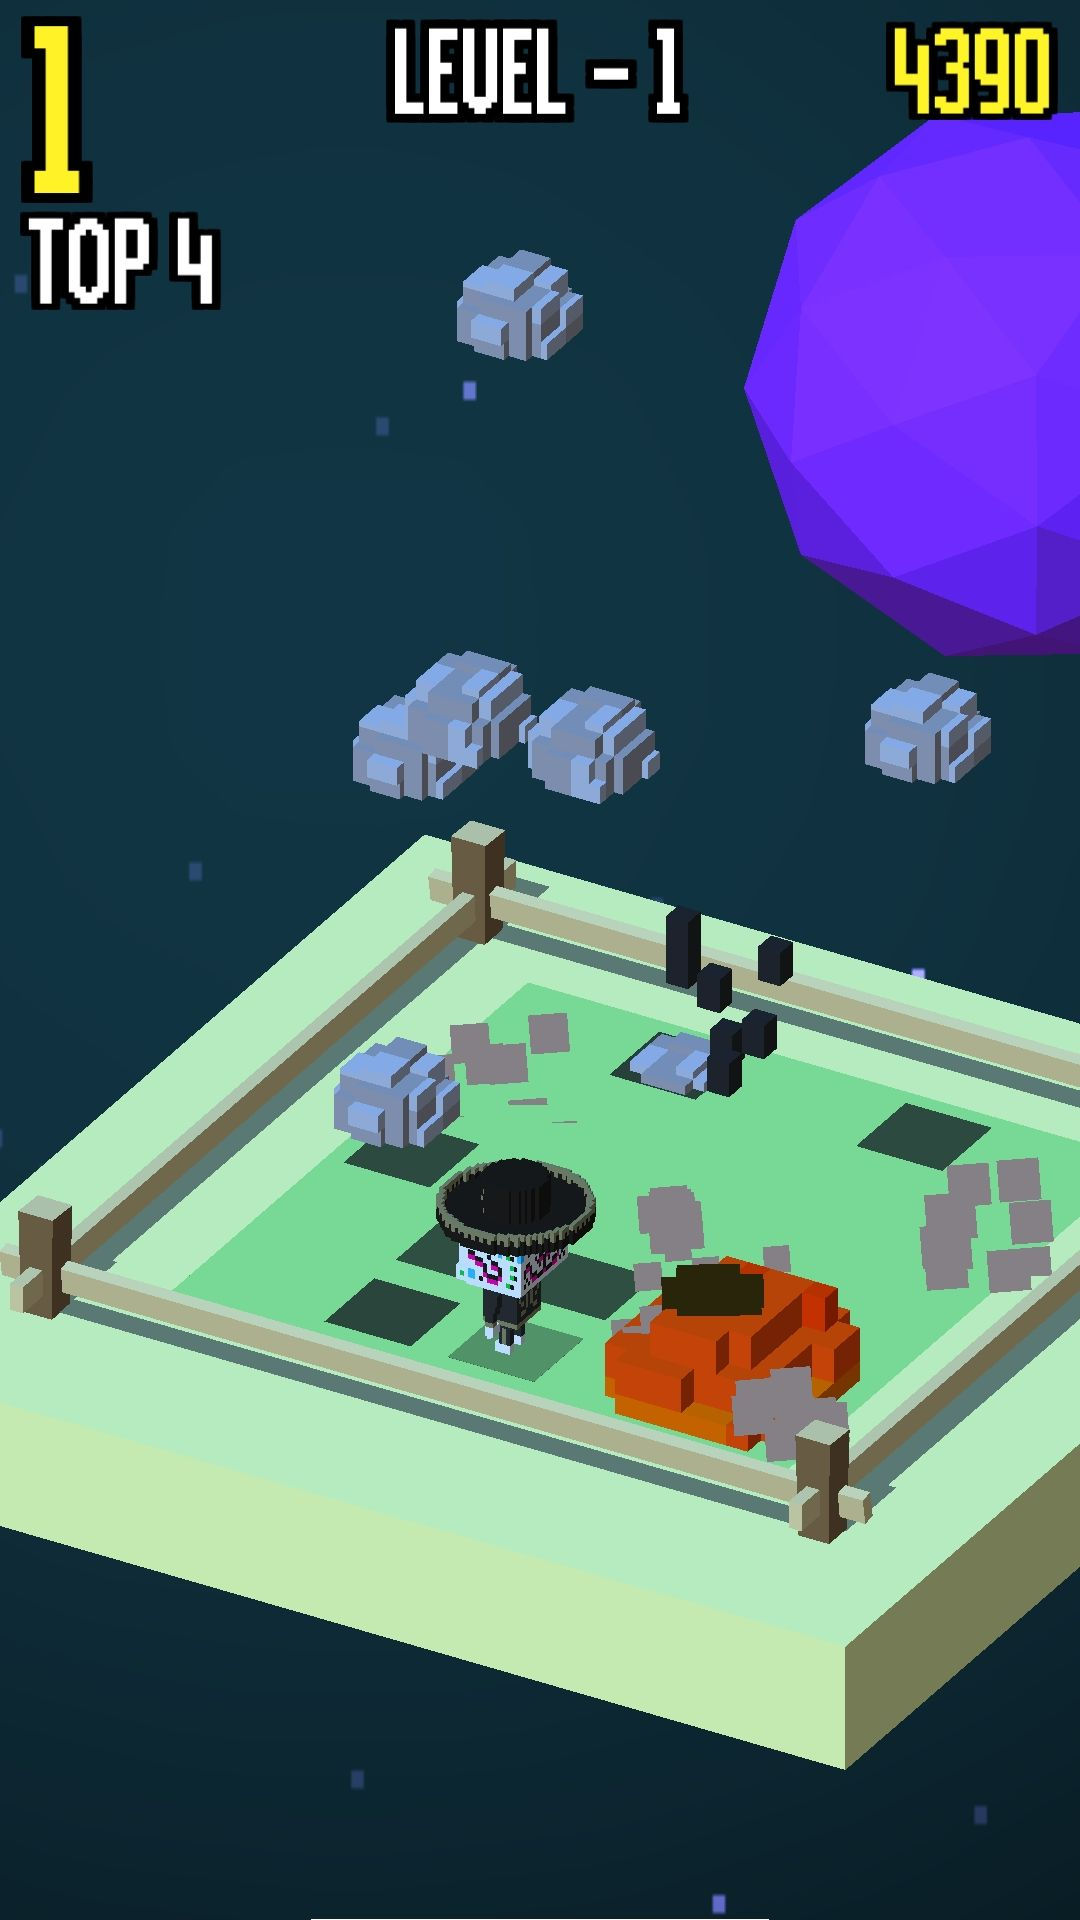 Falling Mystery - Complete Unity Project Screenshot 34